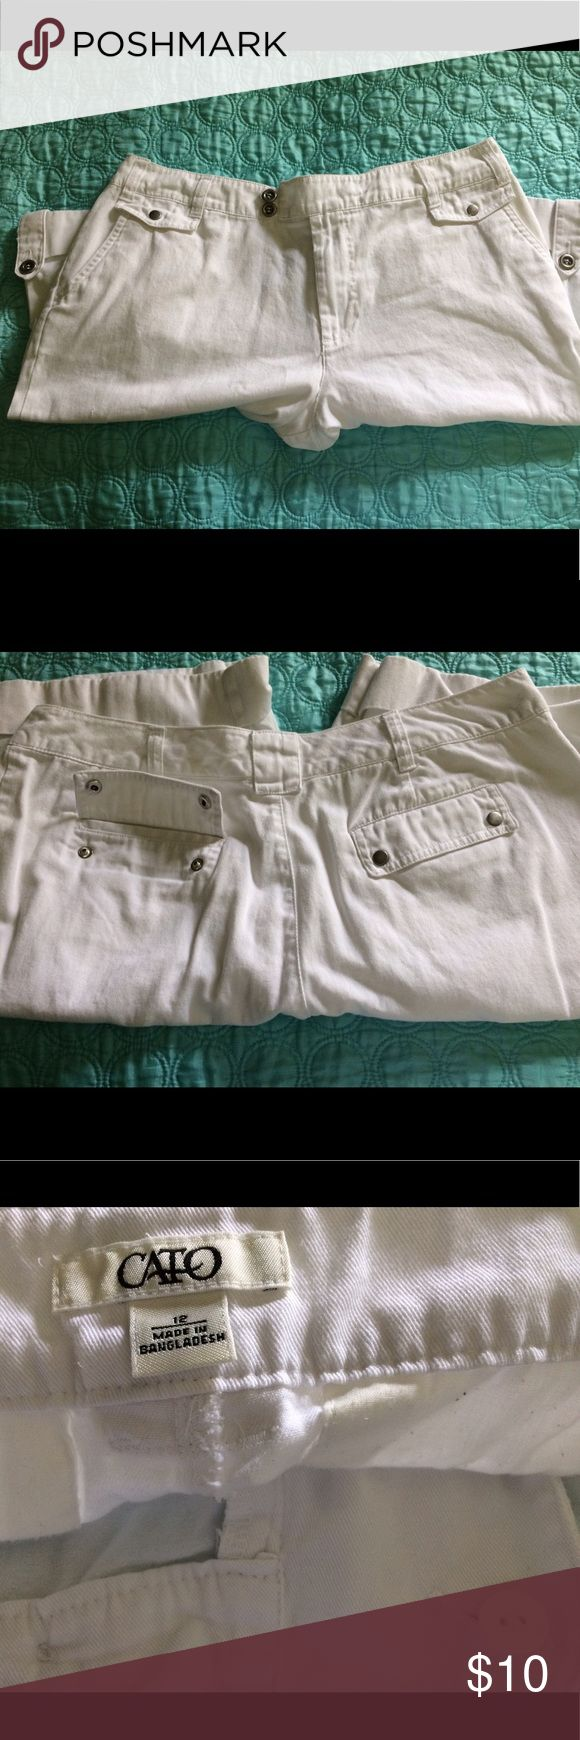 """White Capri Shorts from Cato 💕 Perfect Summer Capri Shorts. Purchased from Cato Fashions and NEVER WORE. There is a blemish which I pictured. Size 12 with Length: 21"""" and Inseam: 12"""". If you have any questions feel free to leave me a comment! Happy Poshing 😊💕💕💕 Cato Shorts"""